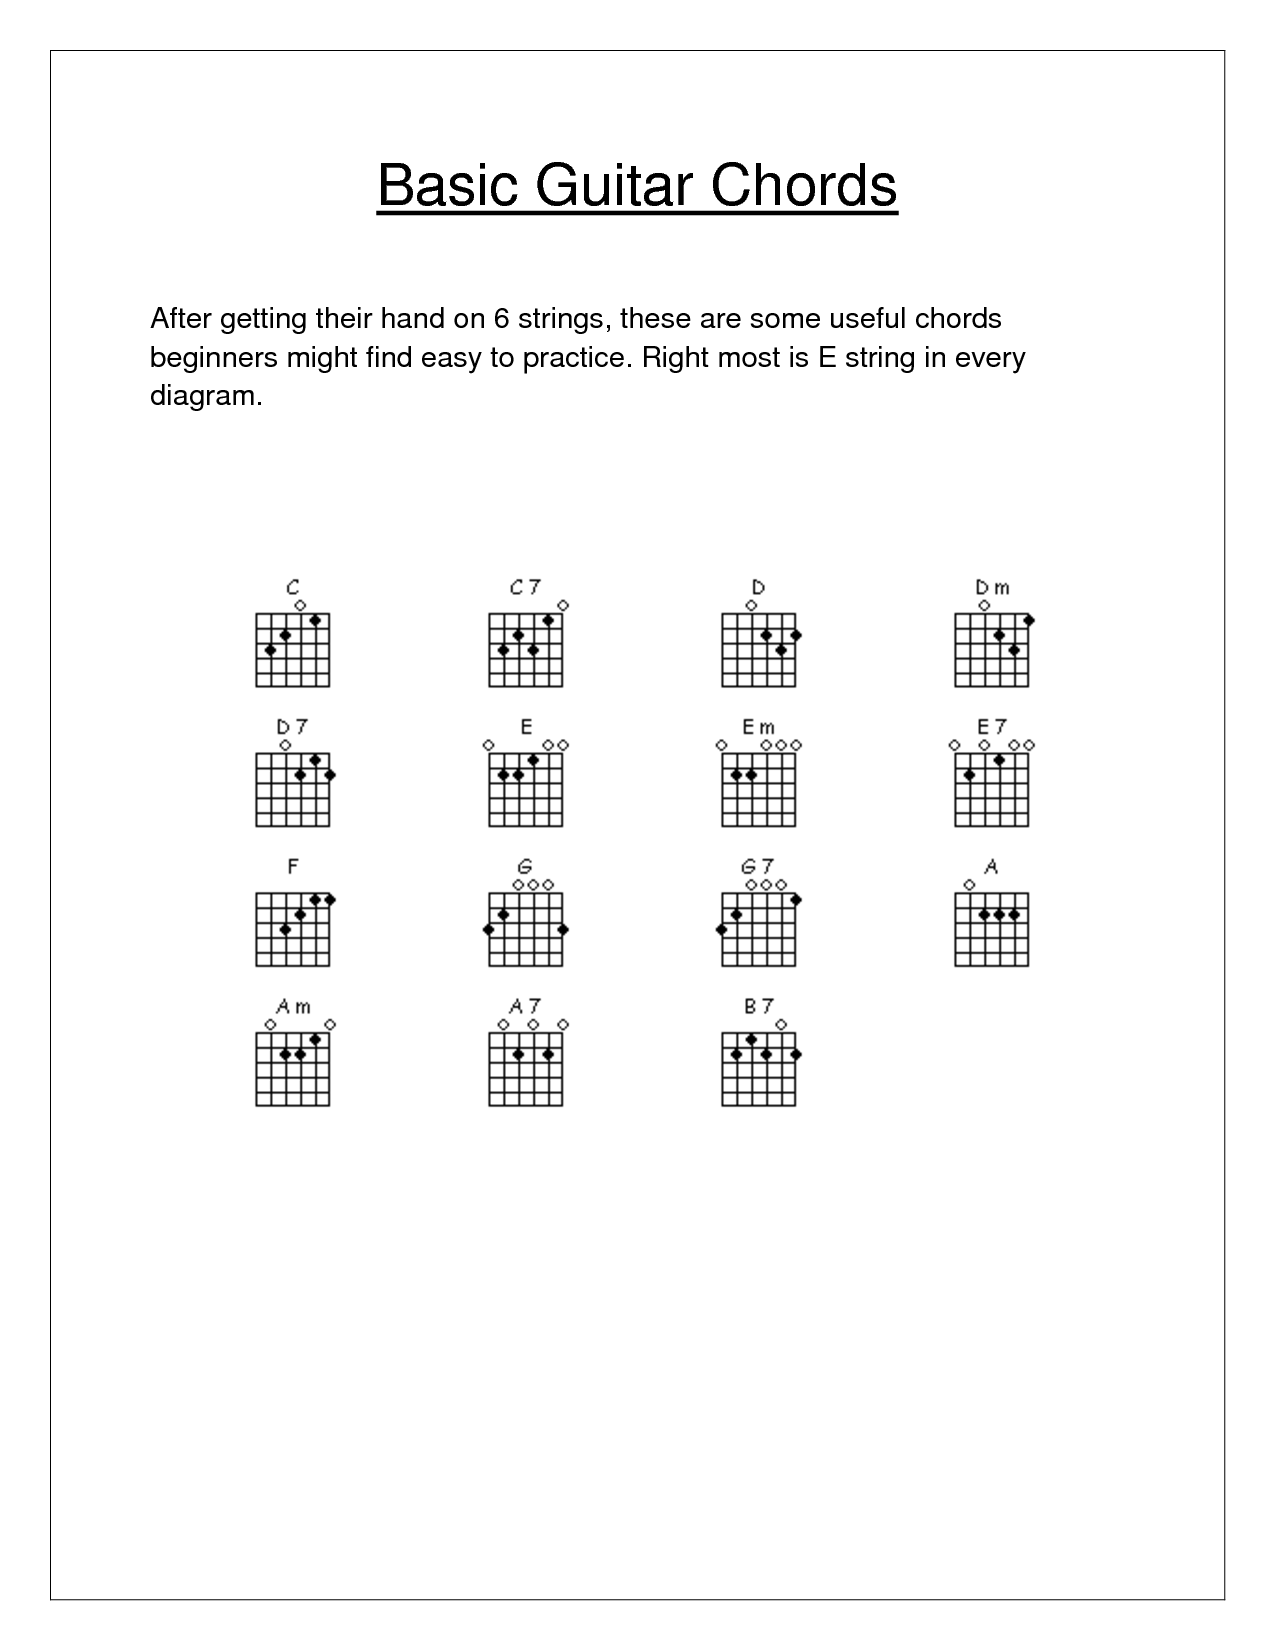 Easy Guitar Chords Basic Guitar Chordsafter Getting Their Hand On